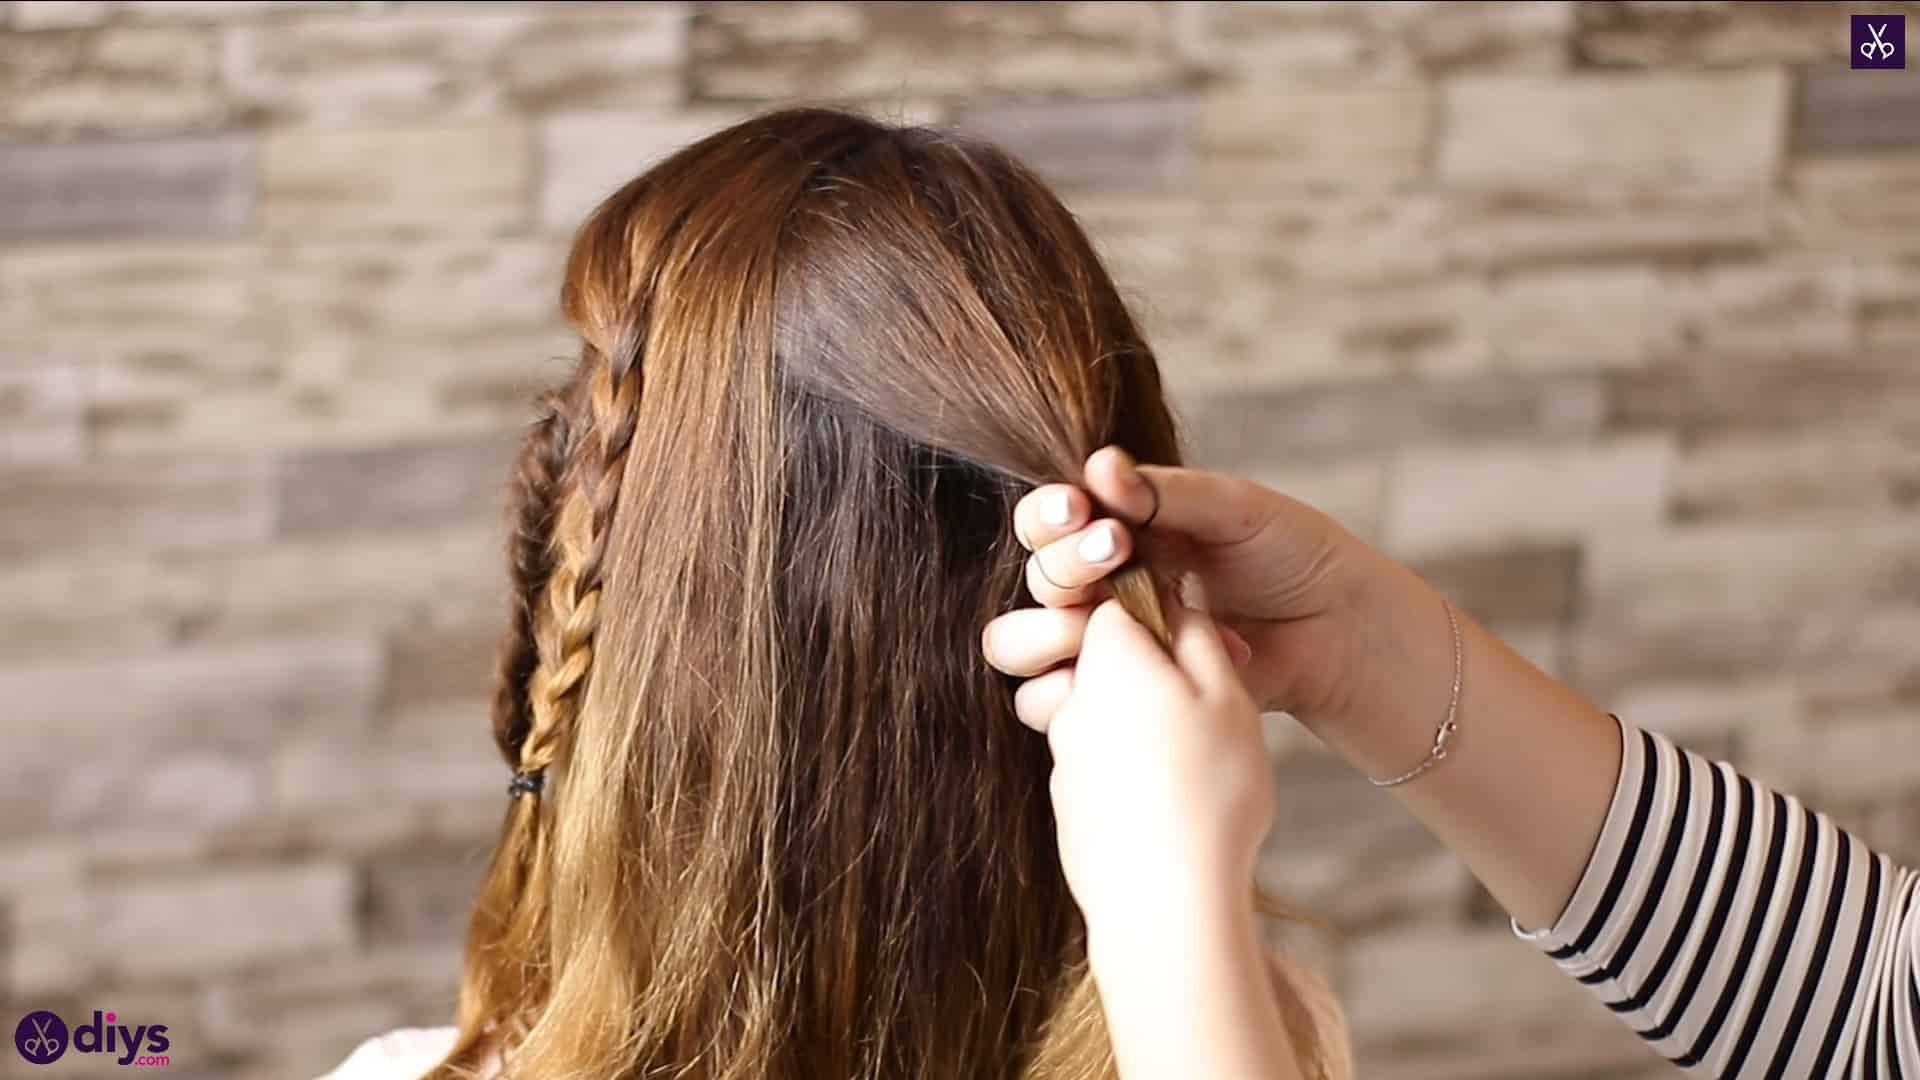 Half up, half down hairstyle for spring40